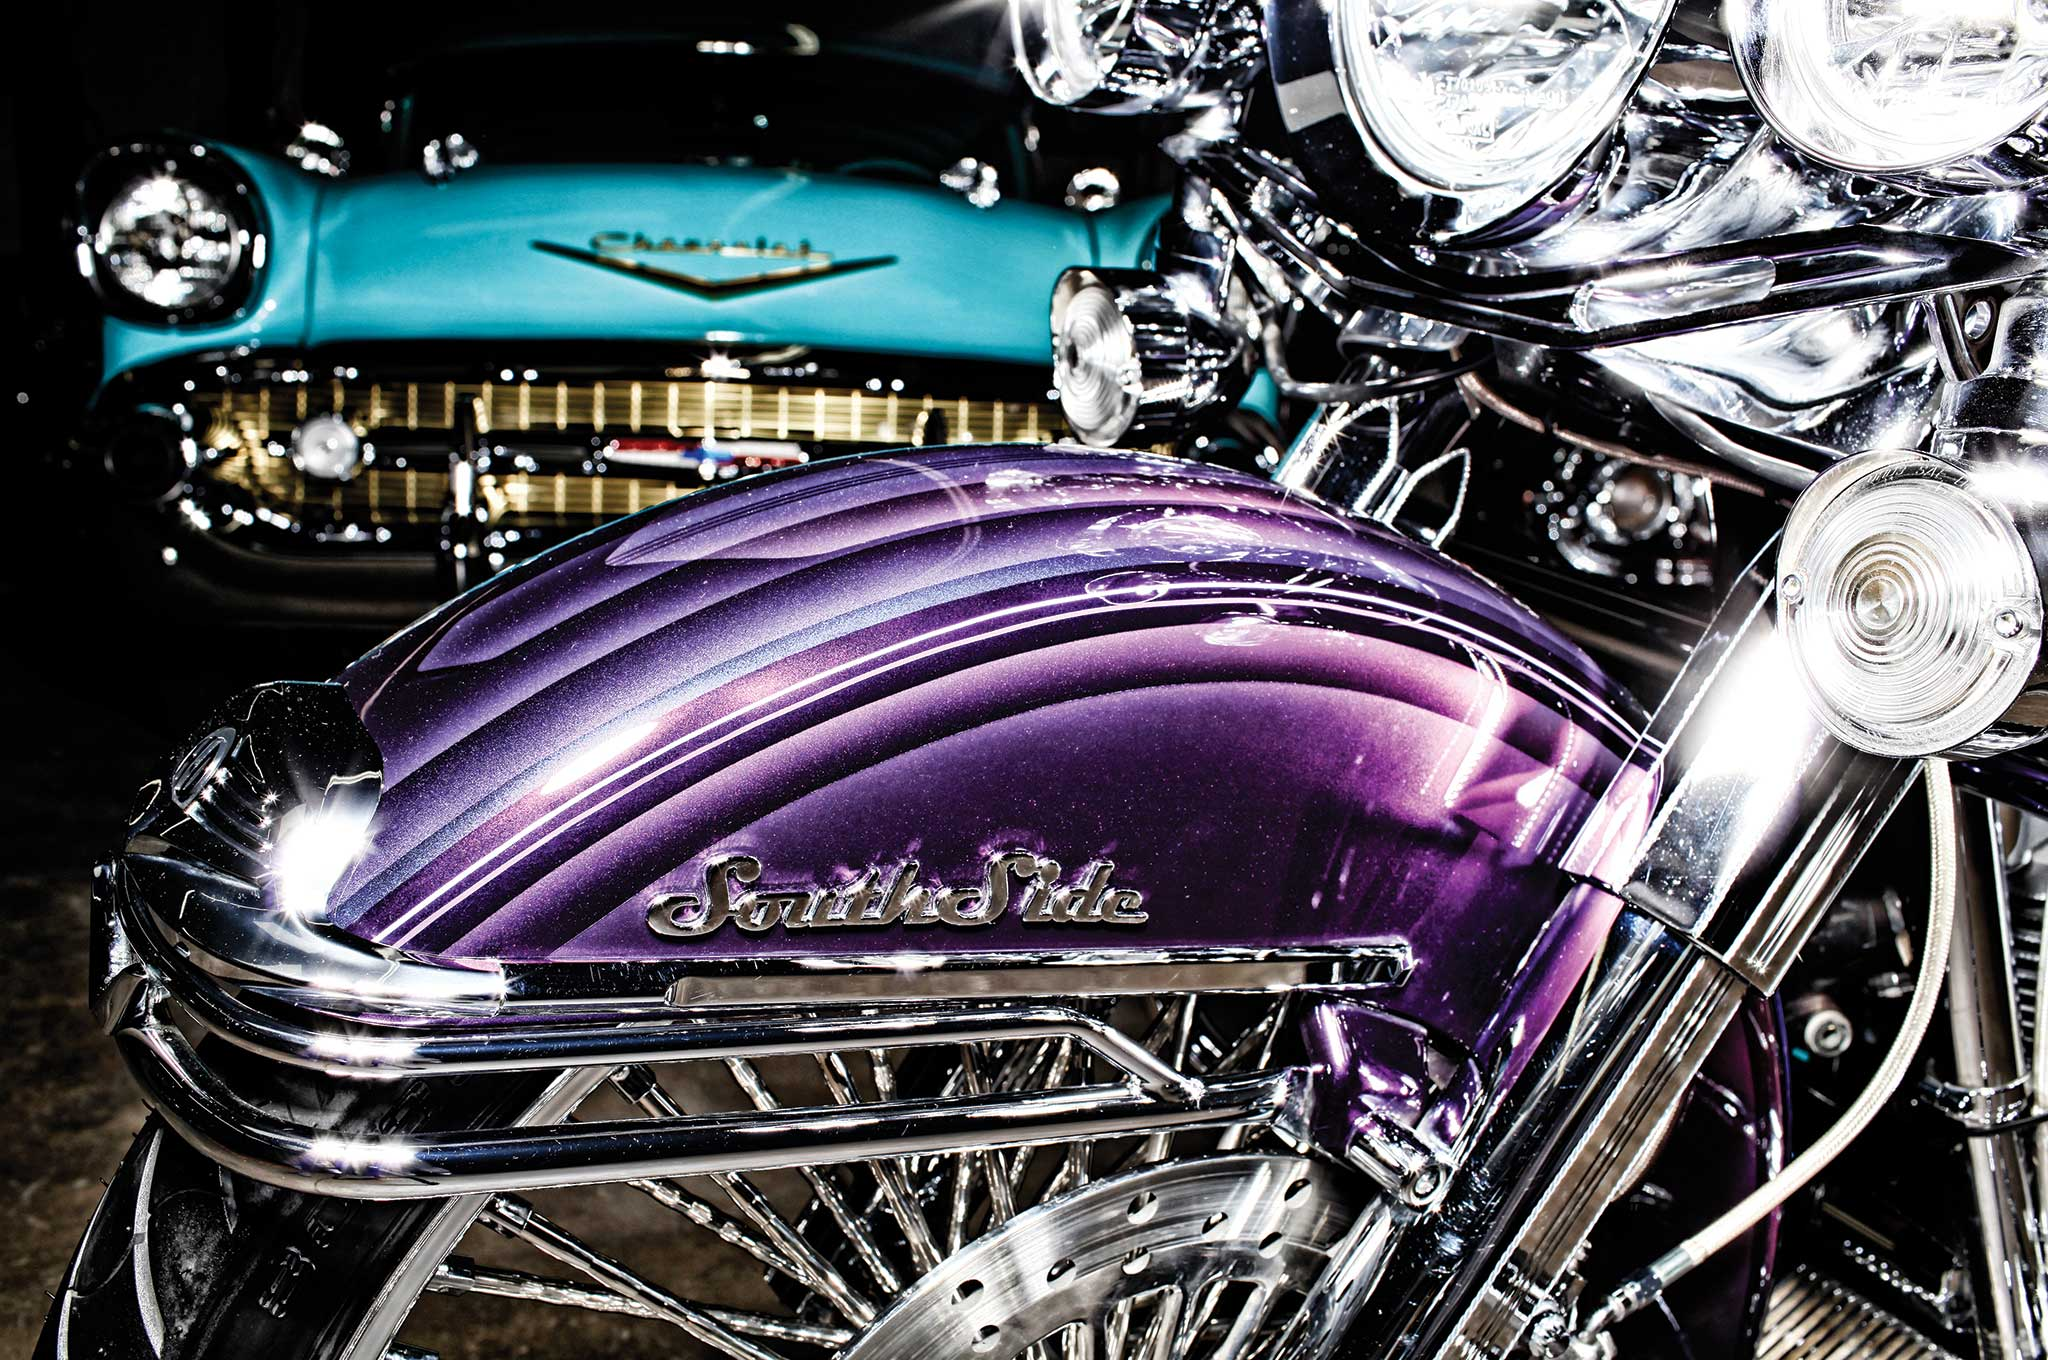 2001 Harley Davidson Road King Mando Lowrider 3 14 Pictures